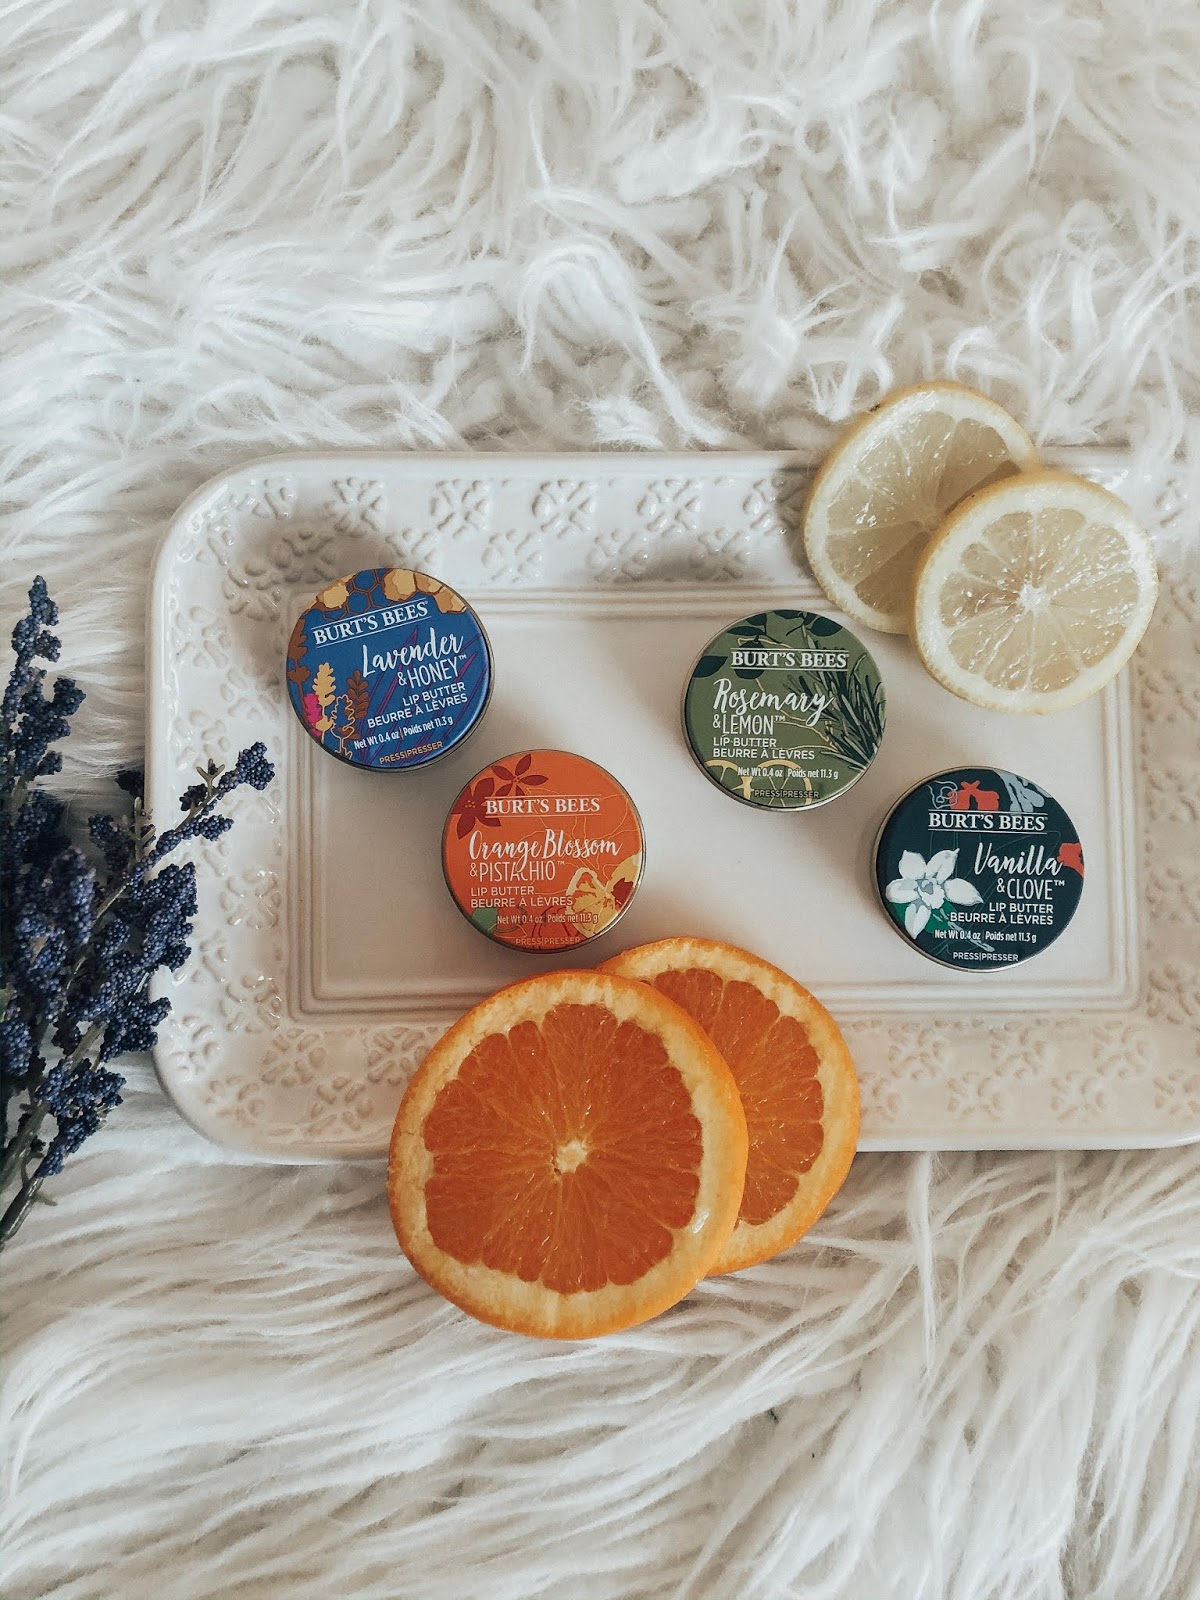 How To Soothe Dry Cracked Lips This Winter - Affordable by Amanda - Burt's Bees Lip Butters